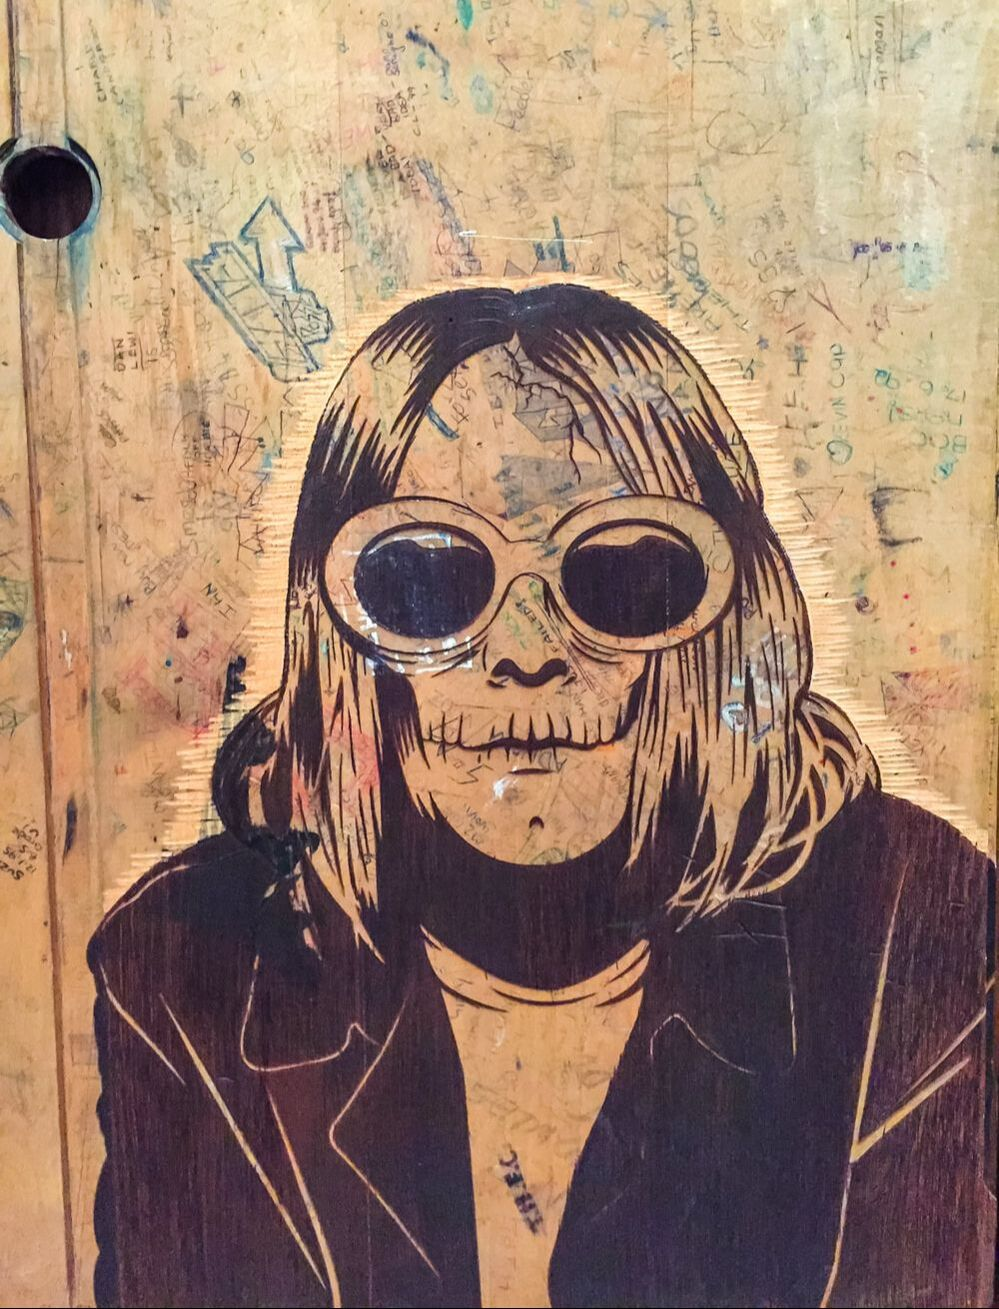 Singapore: Art From The Streets Exhibition at the ArtScience Museum - Kurt Cobain detail of Retired Stencil Cluster - D*Face - 2000-2017.